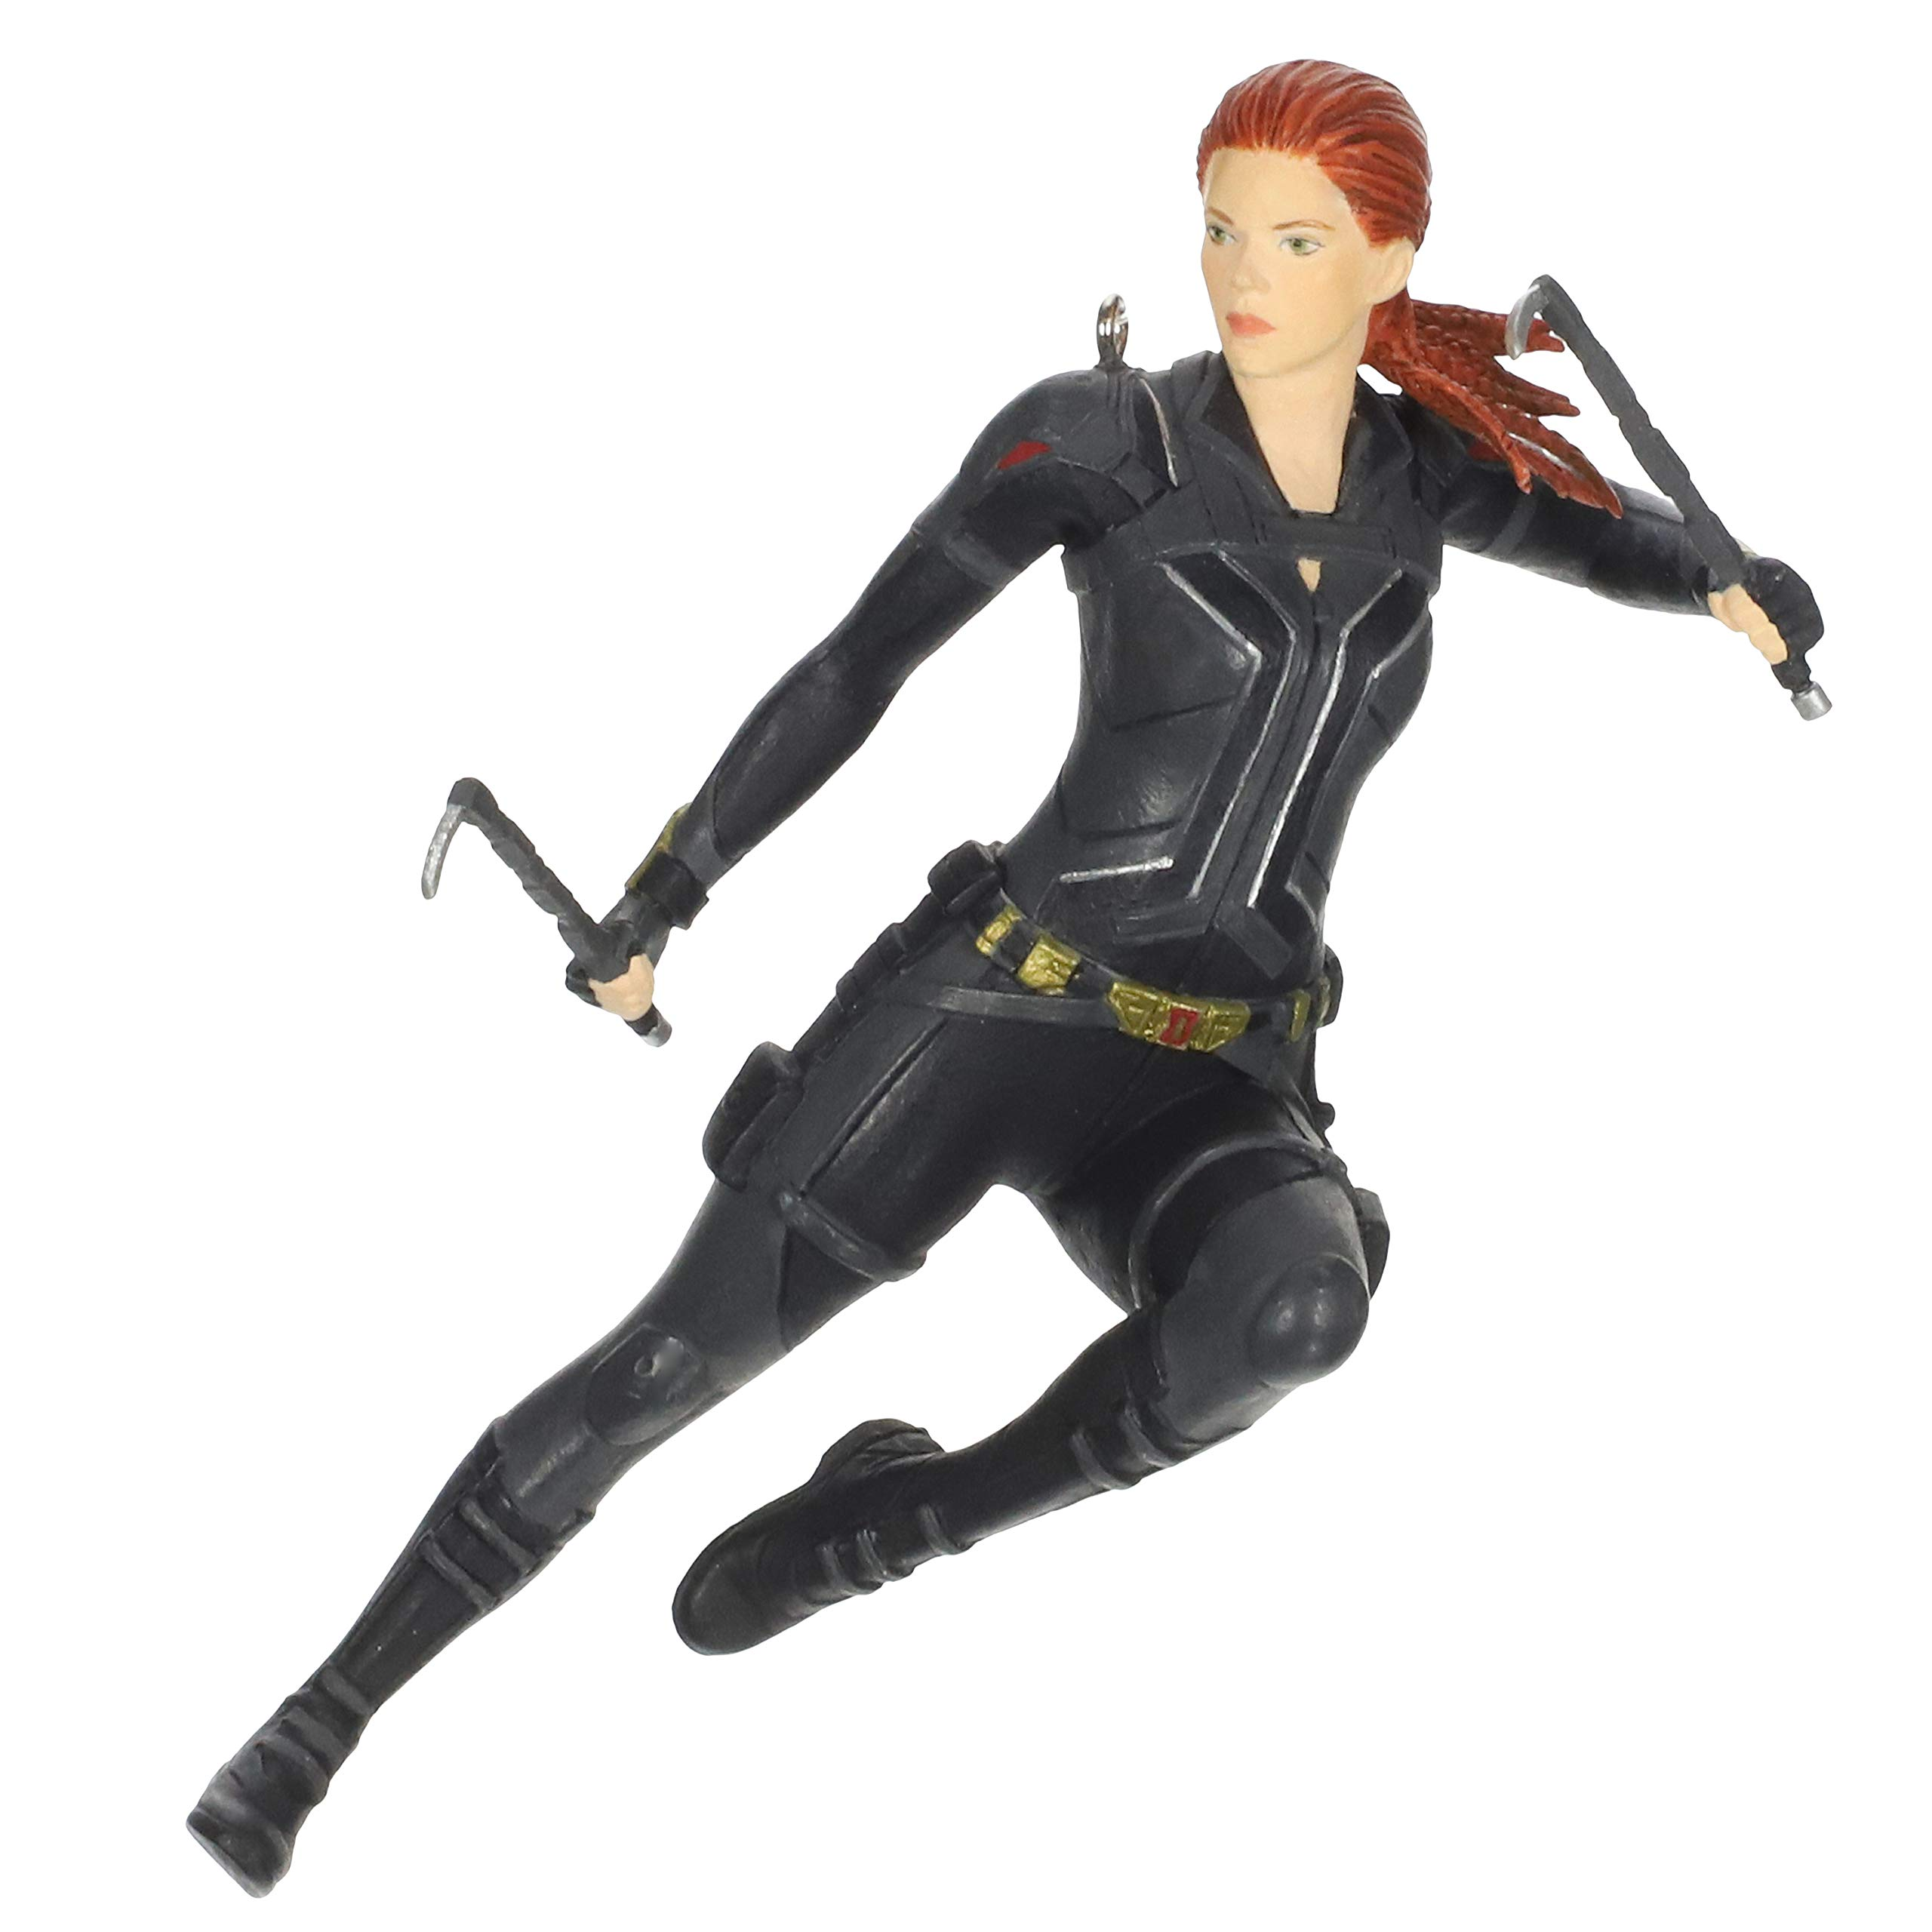 Widow Christmas 2020 Christmas Ornament 2020 Marvel Studios Black Widow Personalized Gifts